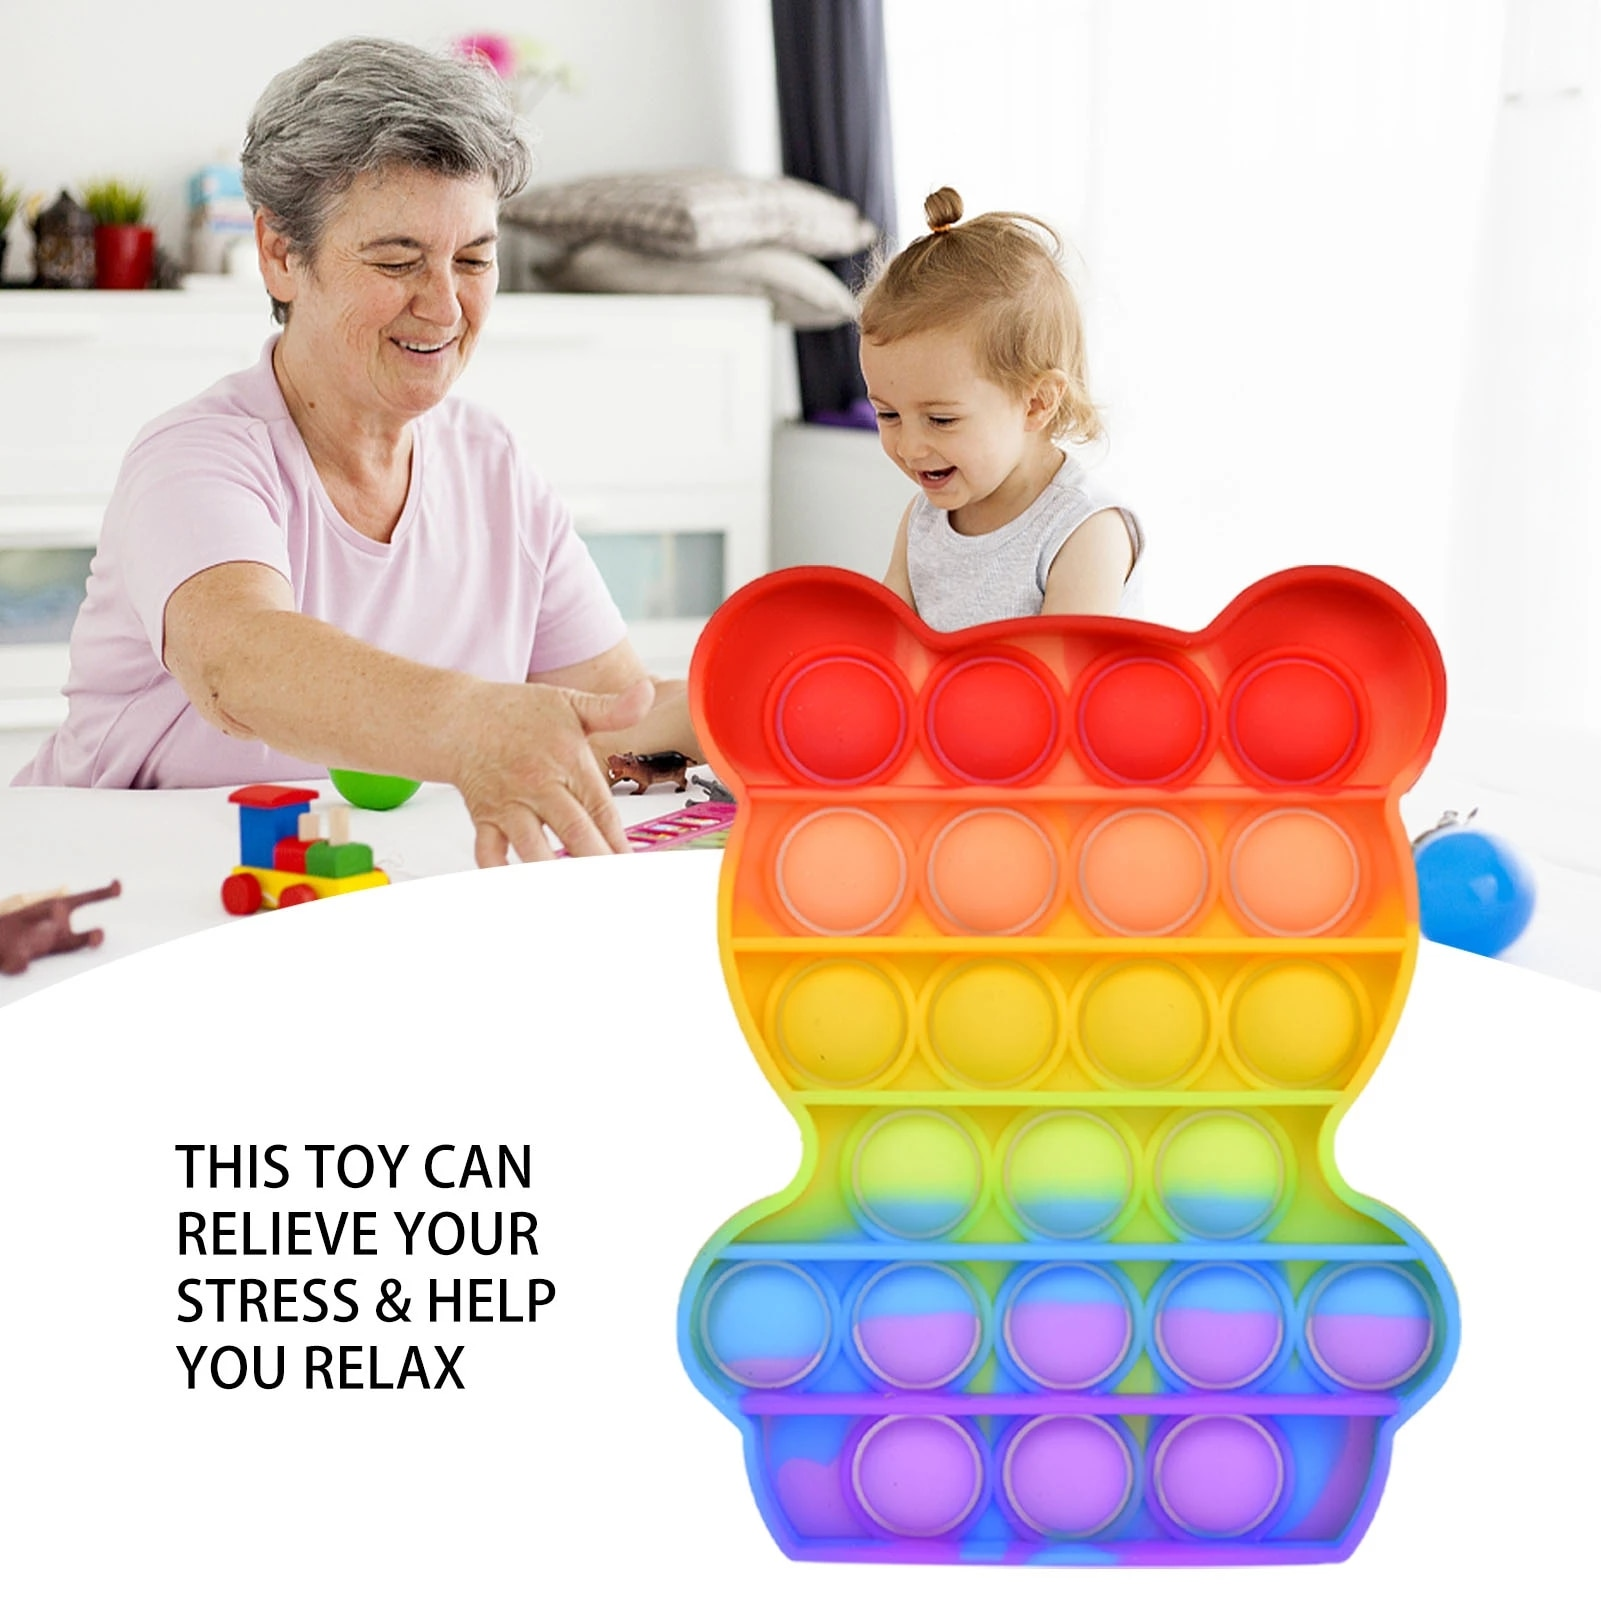 4pcs/Set Push Bubble Fidget Anti Stress Relief Toy Kids Rainbow Board Game Gifts Children Fun Pressure Reduction Toys enlarge